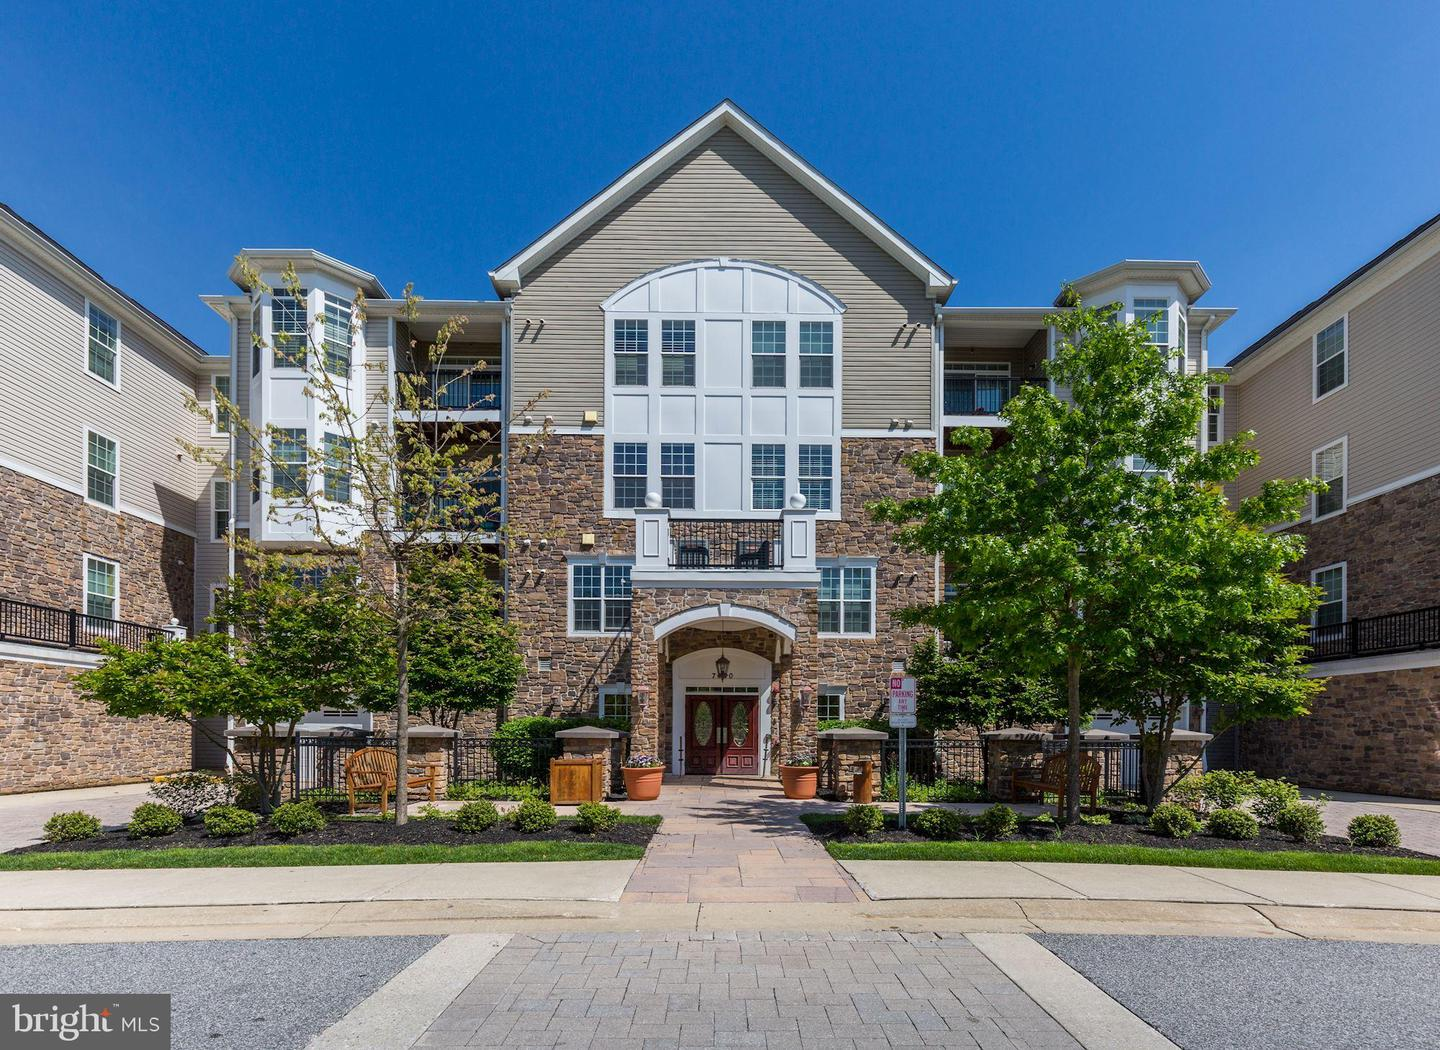 Single Family for Sale at 7400 Travertine Dr #305 7400 Travertine Dr #305 Baltimore, Maryland 21209 United States